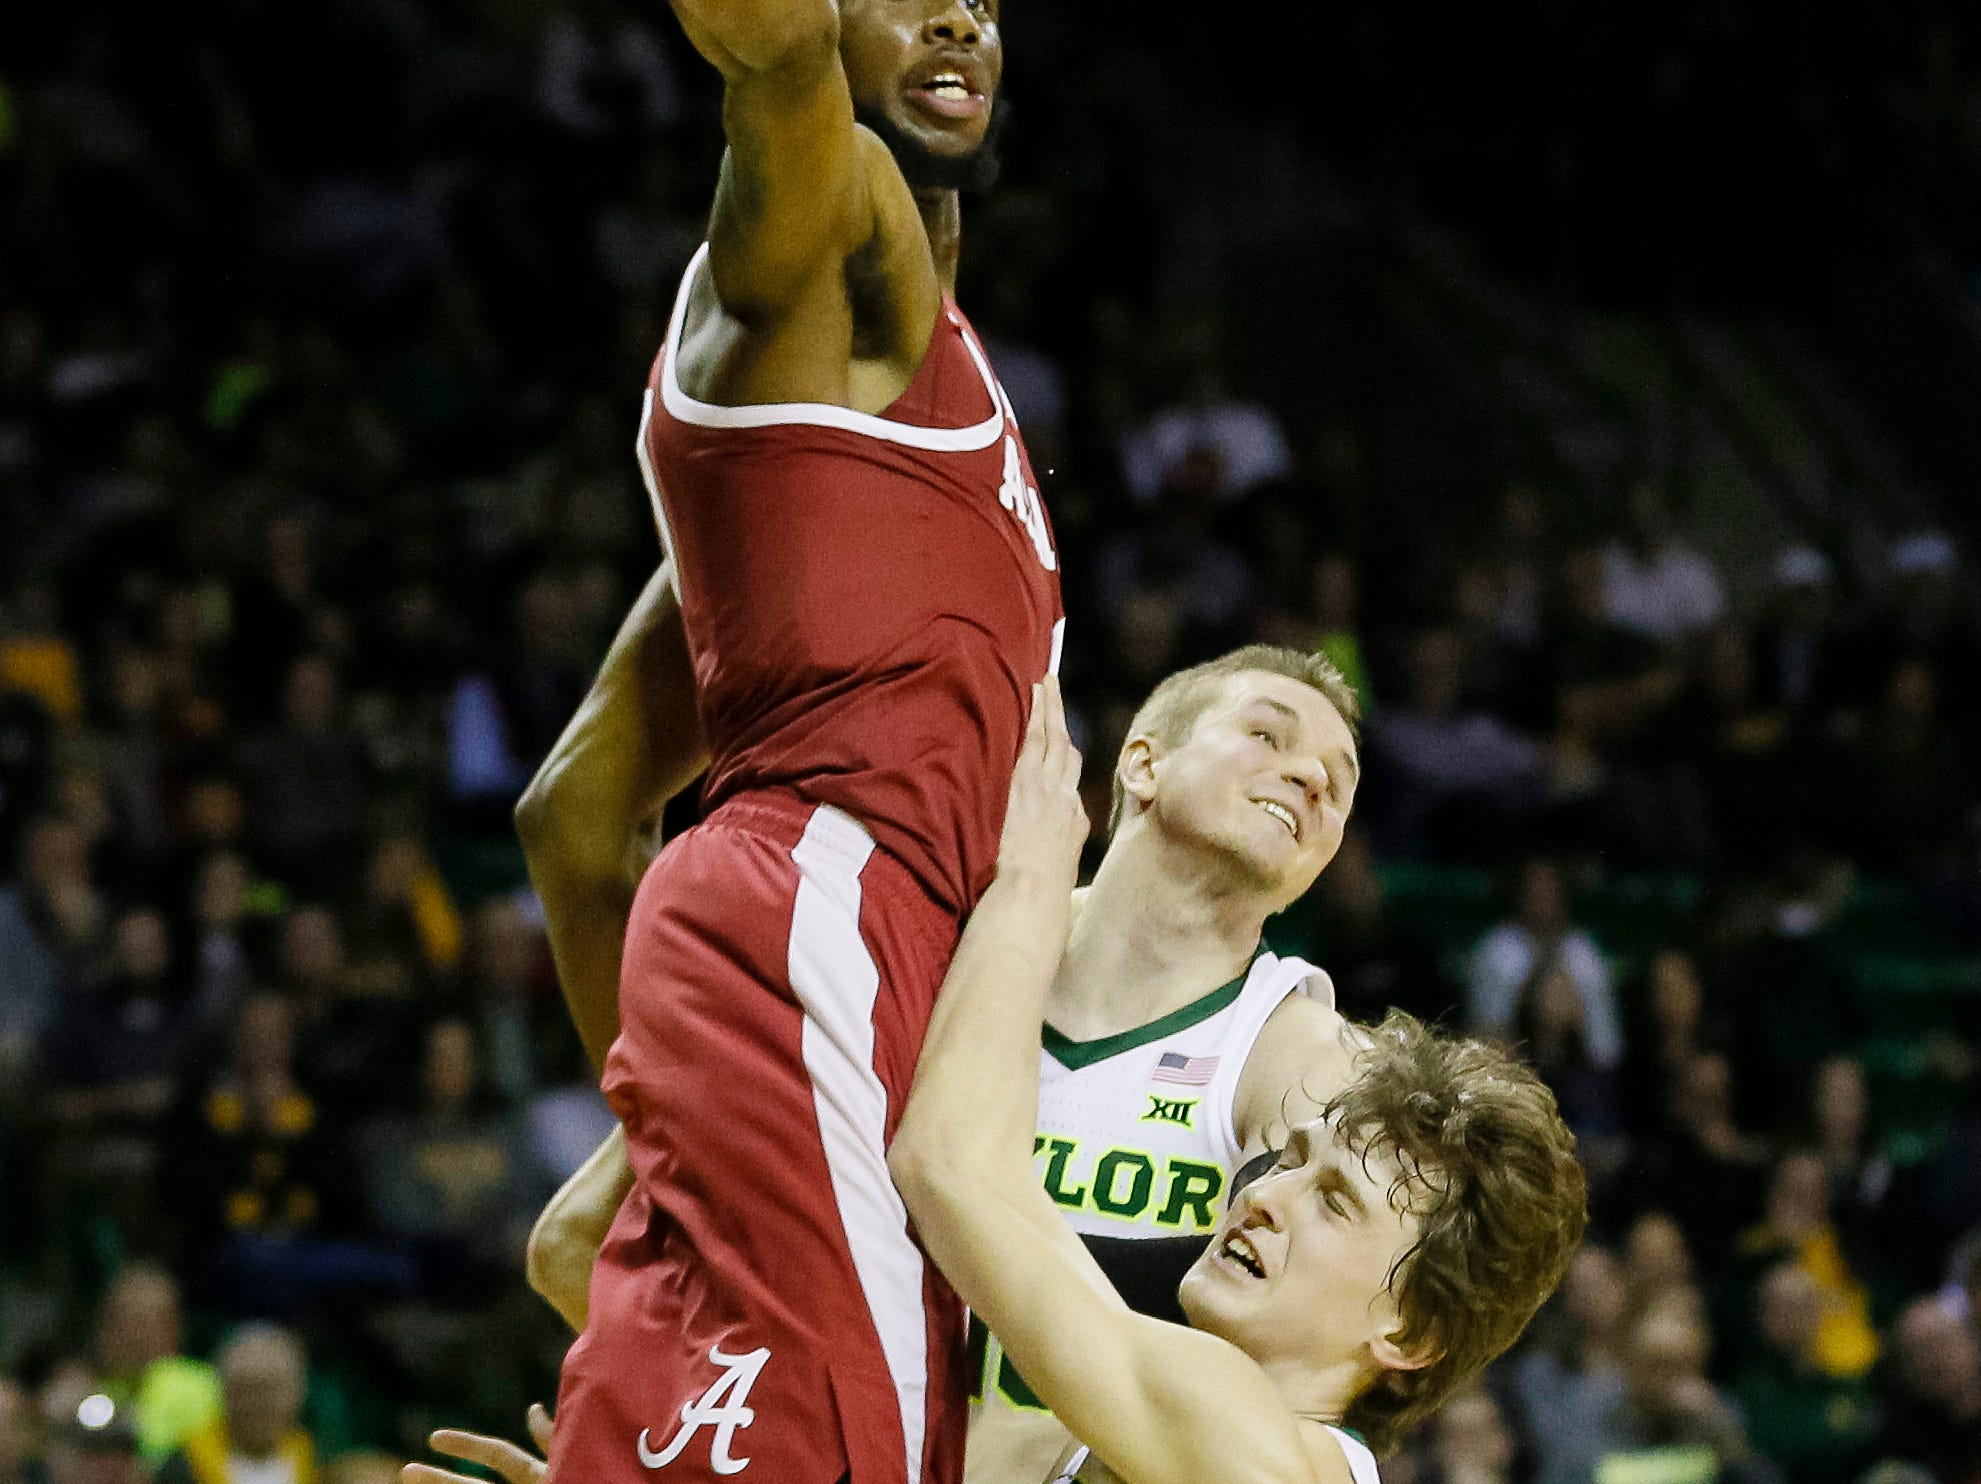 Jan 26, 2019; Waco, TX, USA; Alabama Crimson Tide forward Donta Hall (0) reaches for a rebound as Baylor Bears guard Makai Mason (10) and guard Matthew Mayer (24) defend during the first half at Ferrell Center. Mandatory Credit: Ray Carlin-USA TODAY Sports